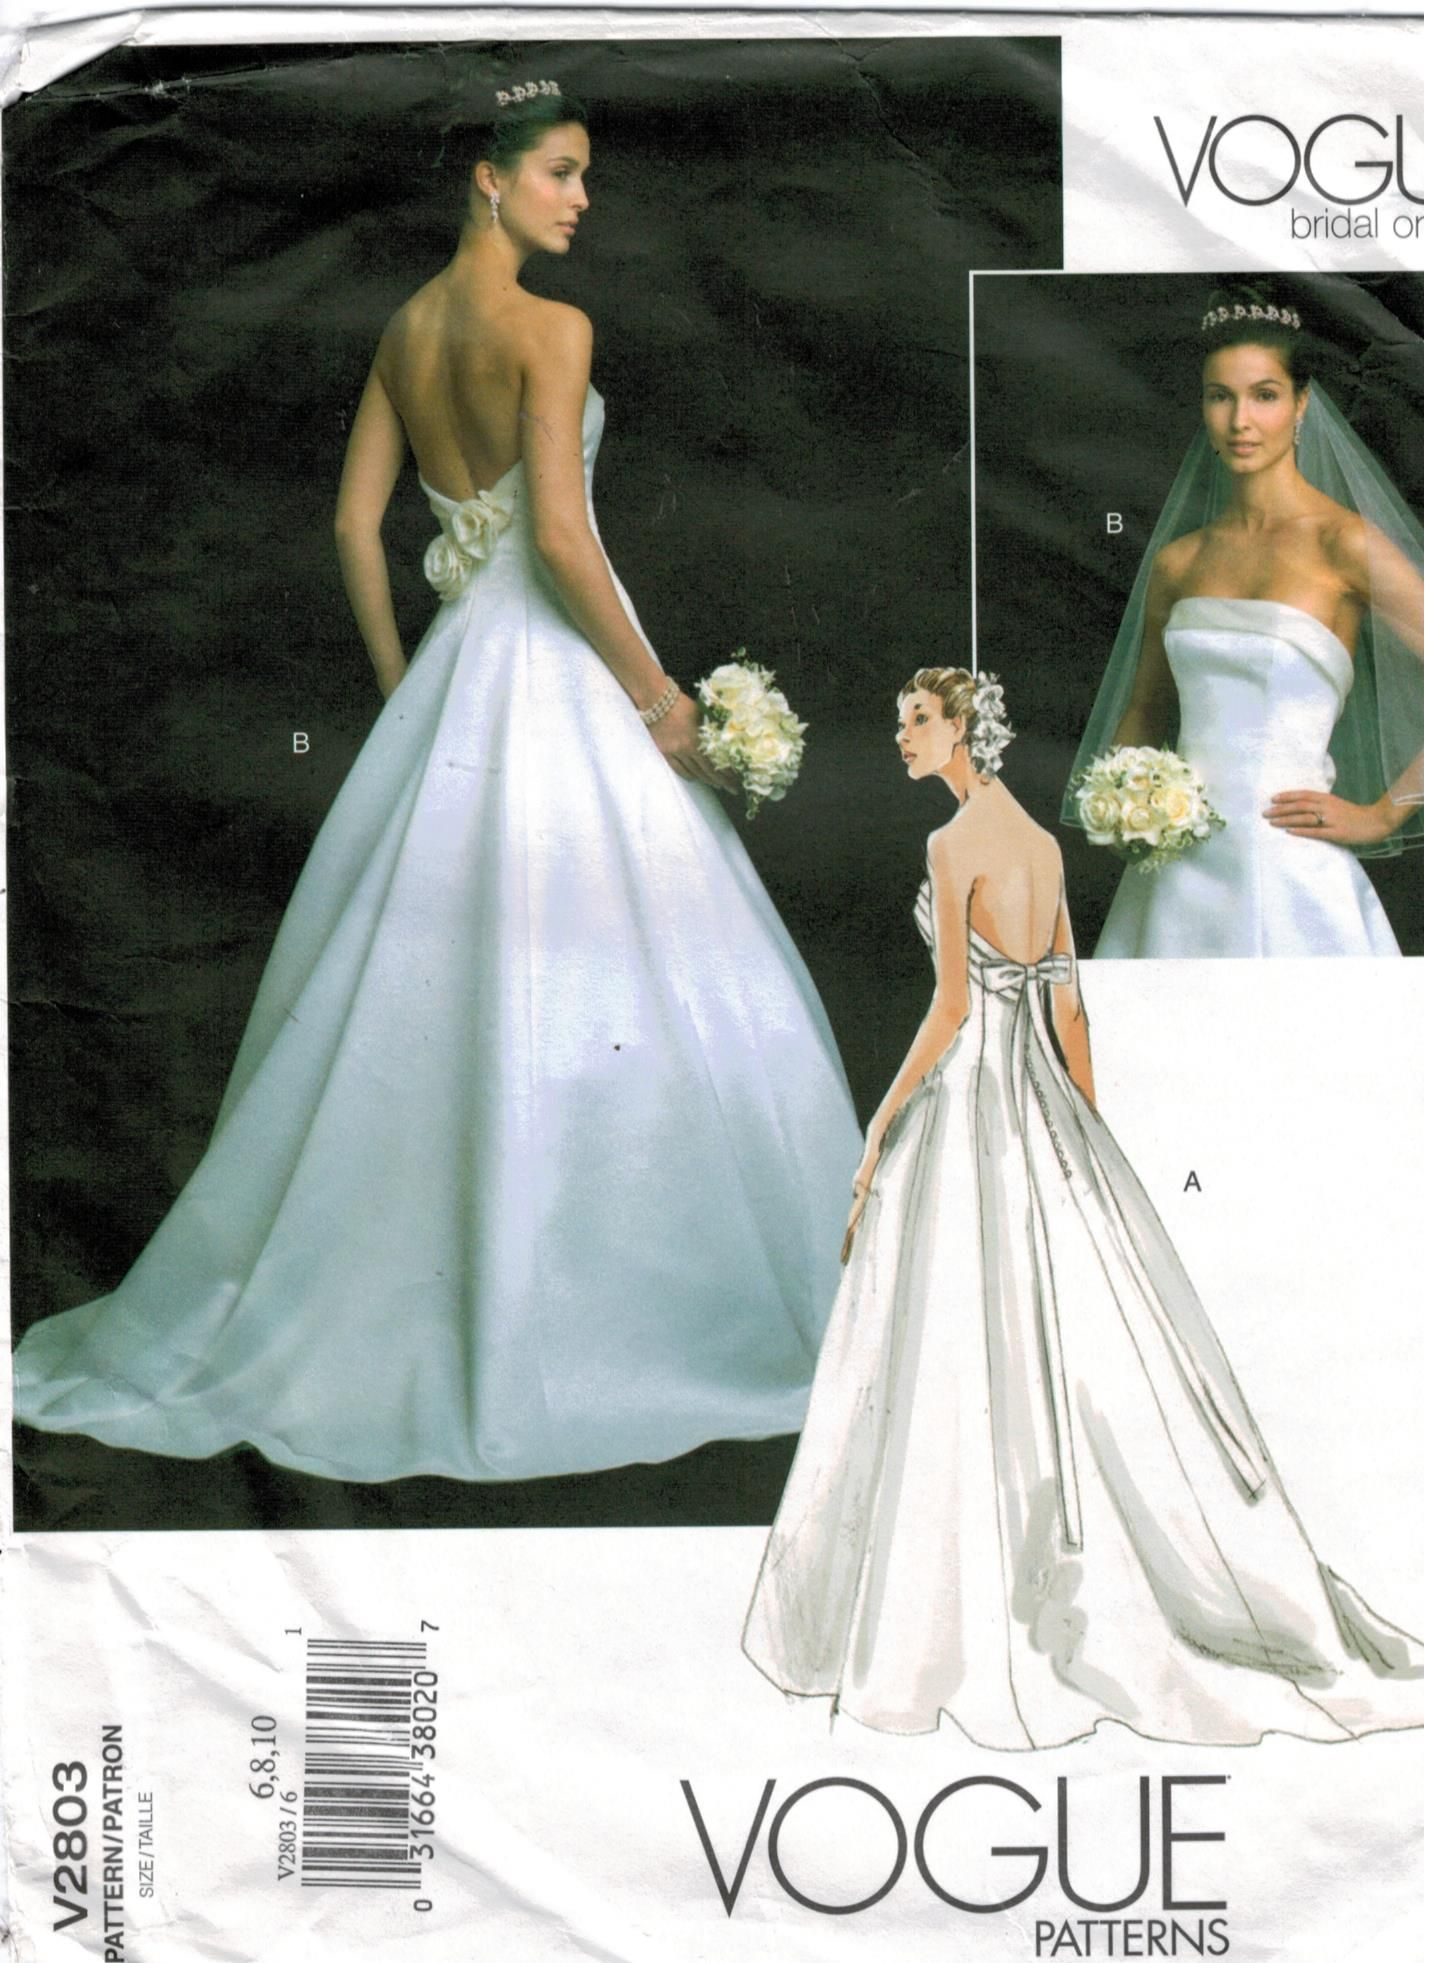 Planning a summer wedding this beautiful gown from vogue patterns this beautiful gown from vogue patterns is perfect for your special ombrellifo Images